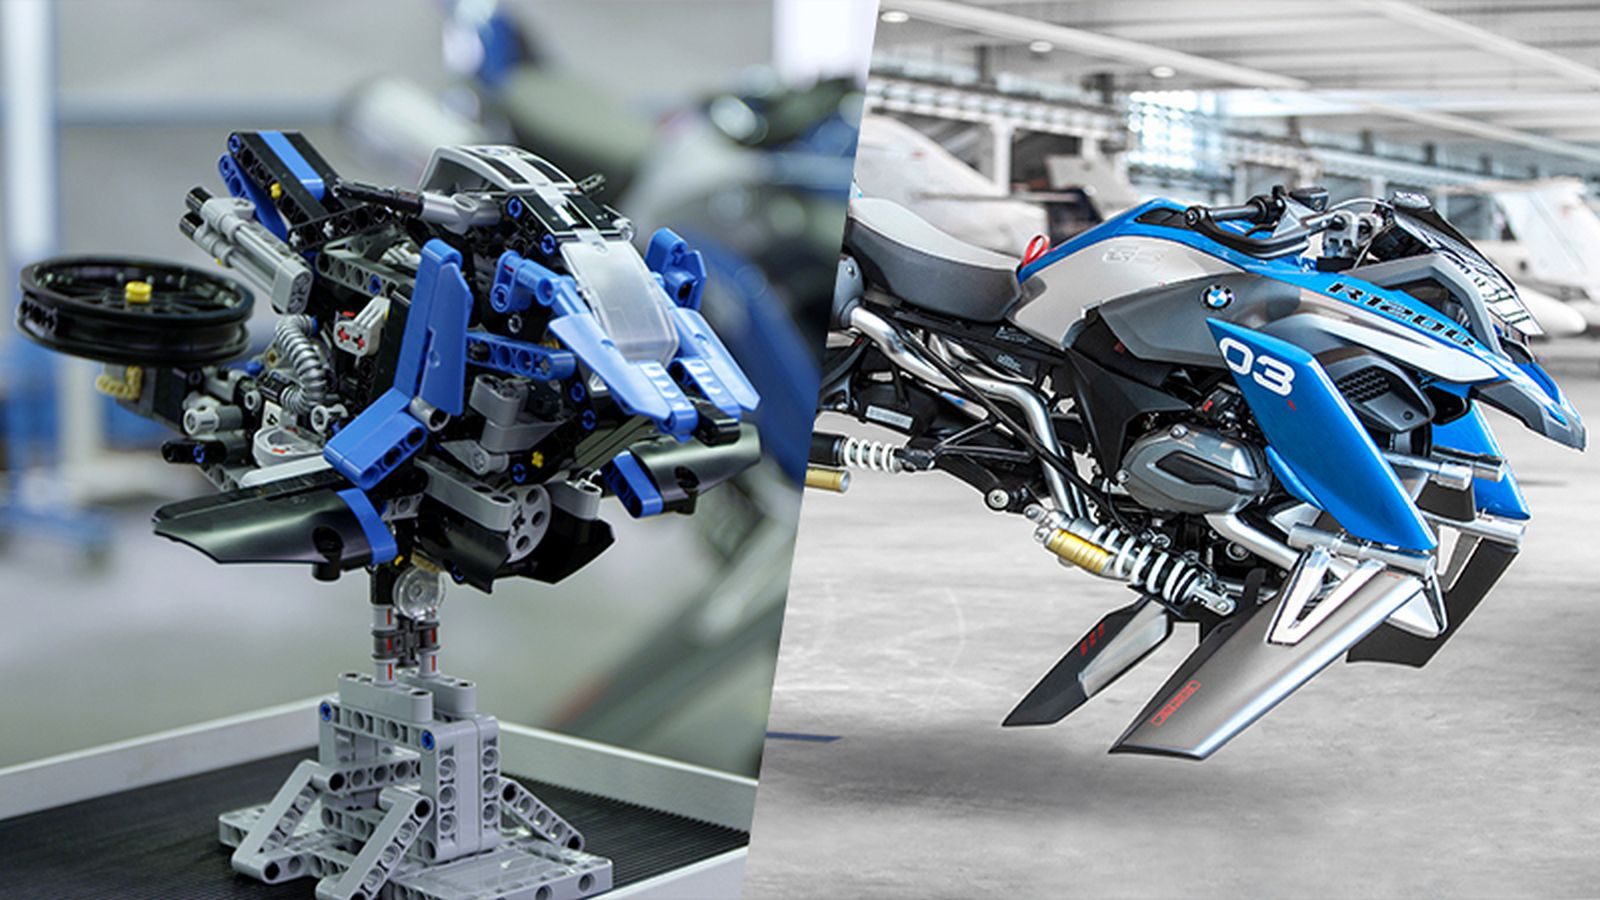 bmw creates fantastic flying motorcycle concept inspiredlego model